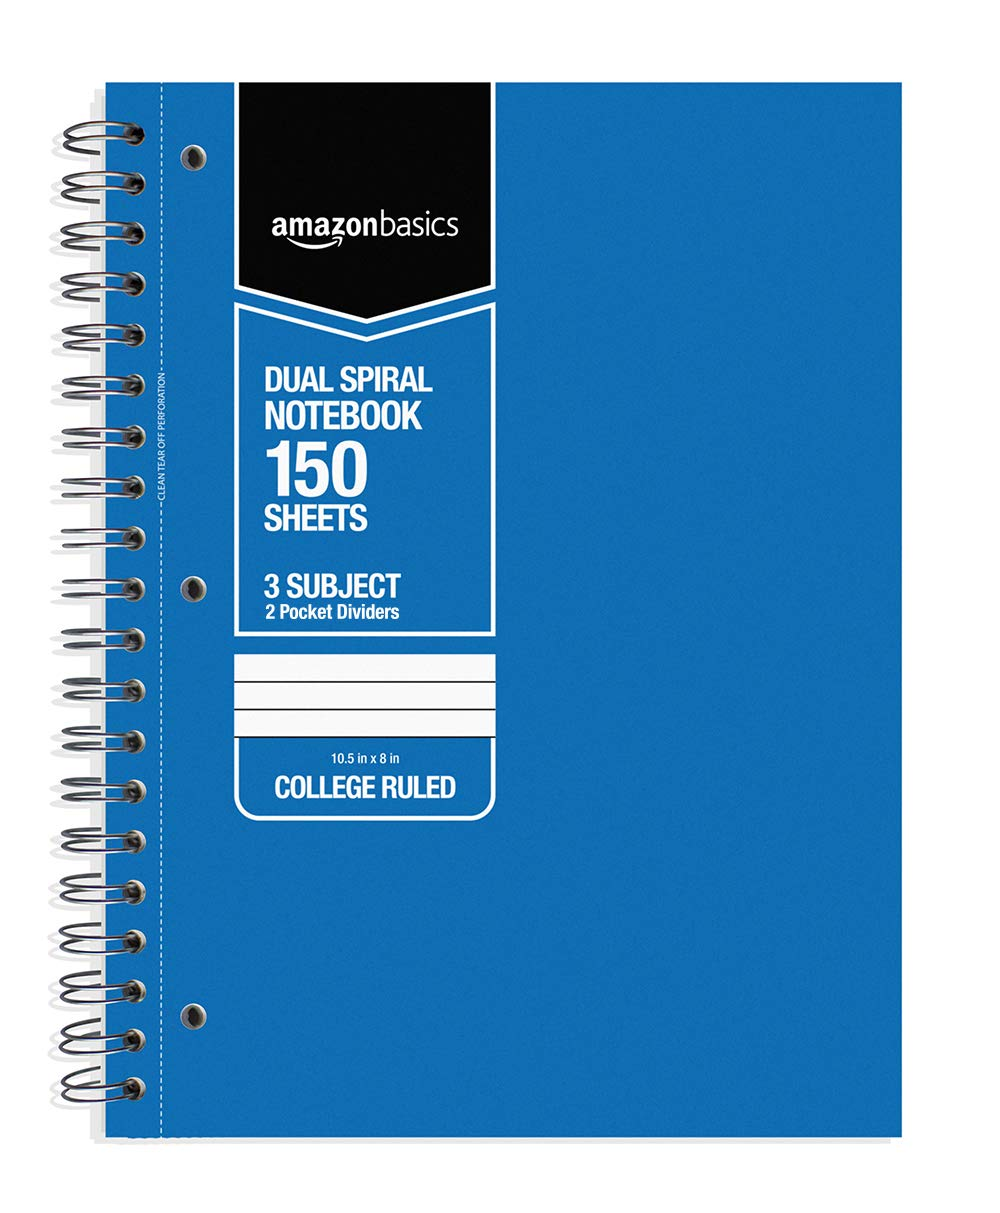 DHgateBasics College Ruled Wirebound 3-Subject 150-Sheet Notebook with Pocket Divider - Pack of 6, 10.5 x 8 Inch, Multi-Color